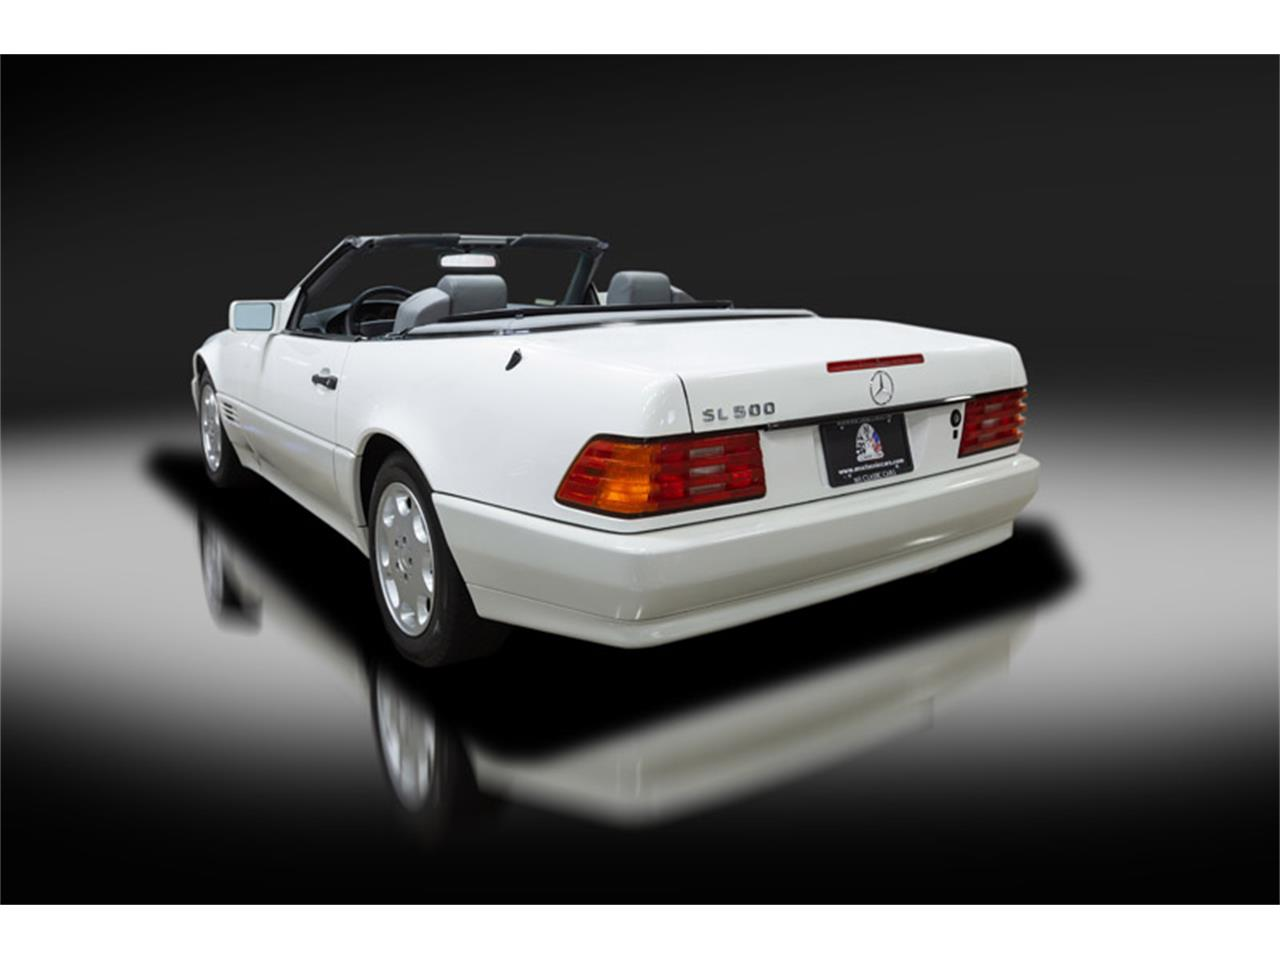 Large Picture of 1995 Mercedes-Benz SL500 located in Massachusetts Auction Vehicle - QQJK